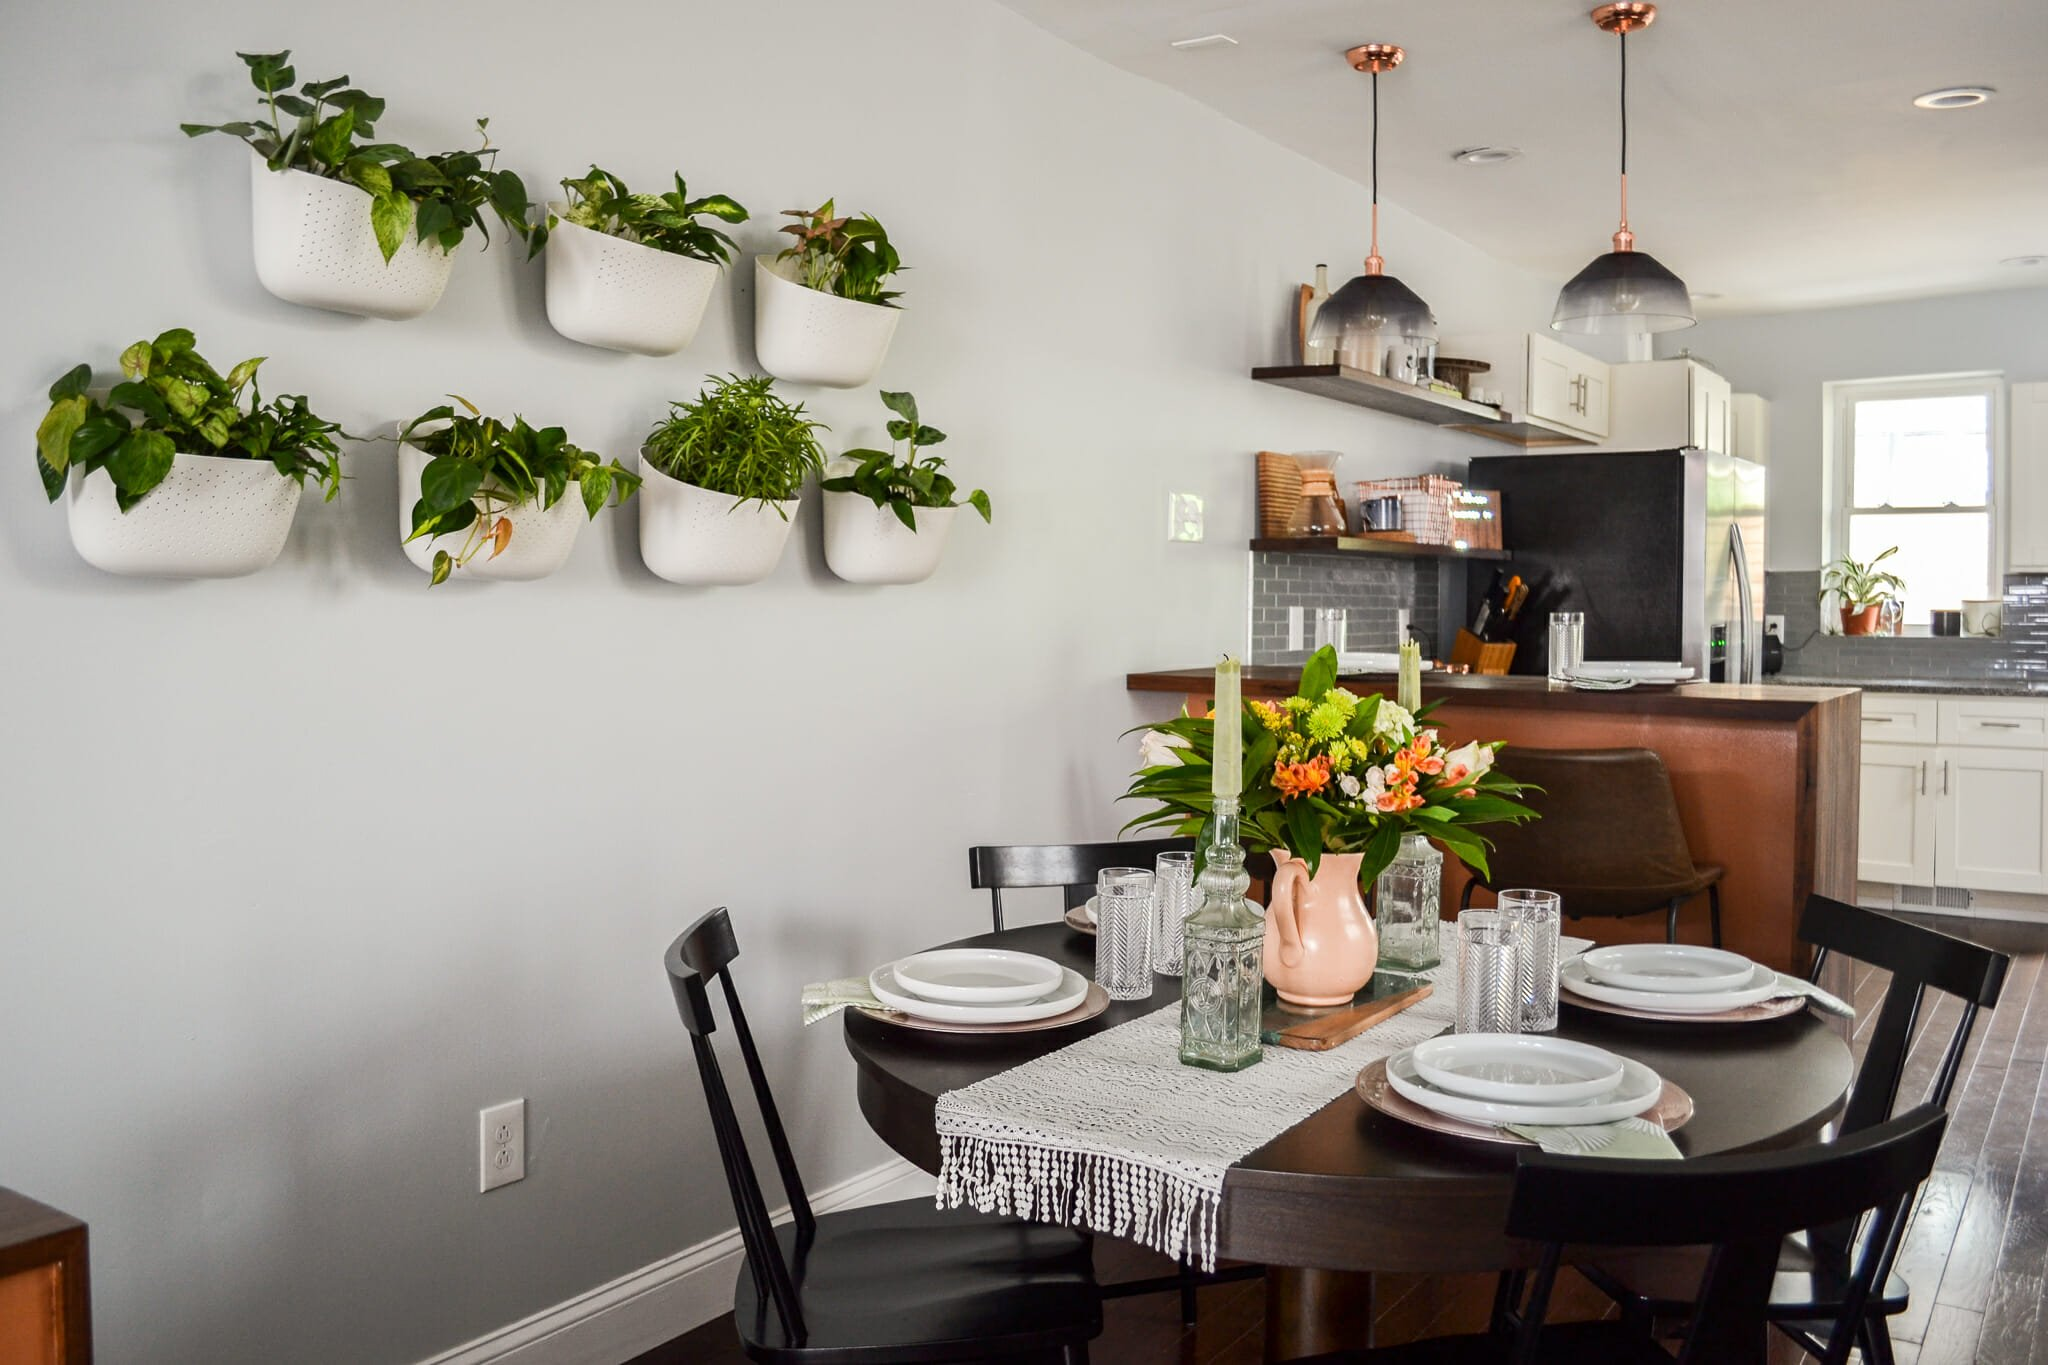 Open kitchen and dining by top philadelphia interior designer Johanna A.